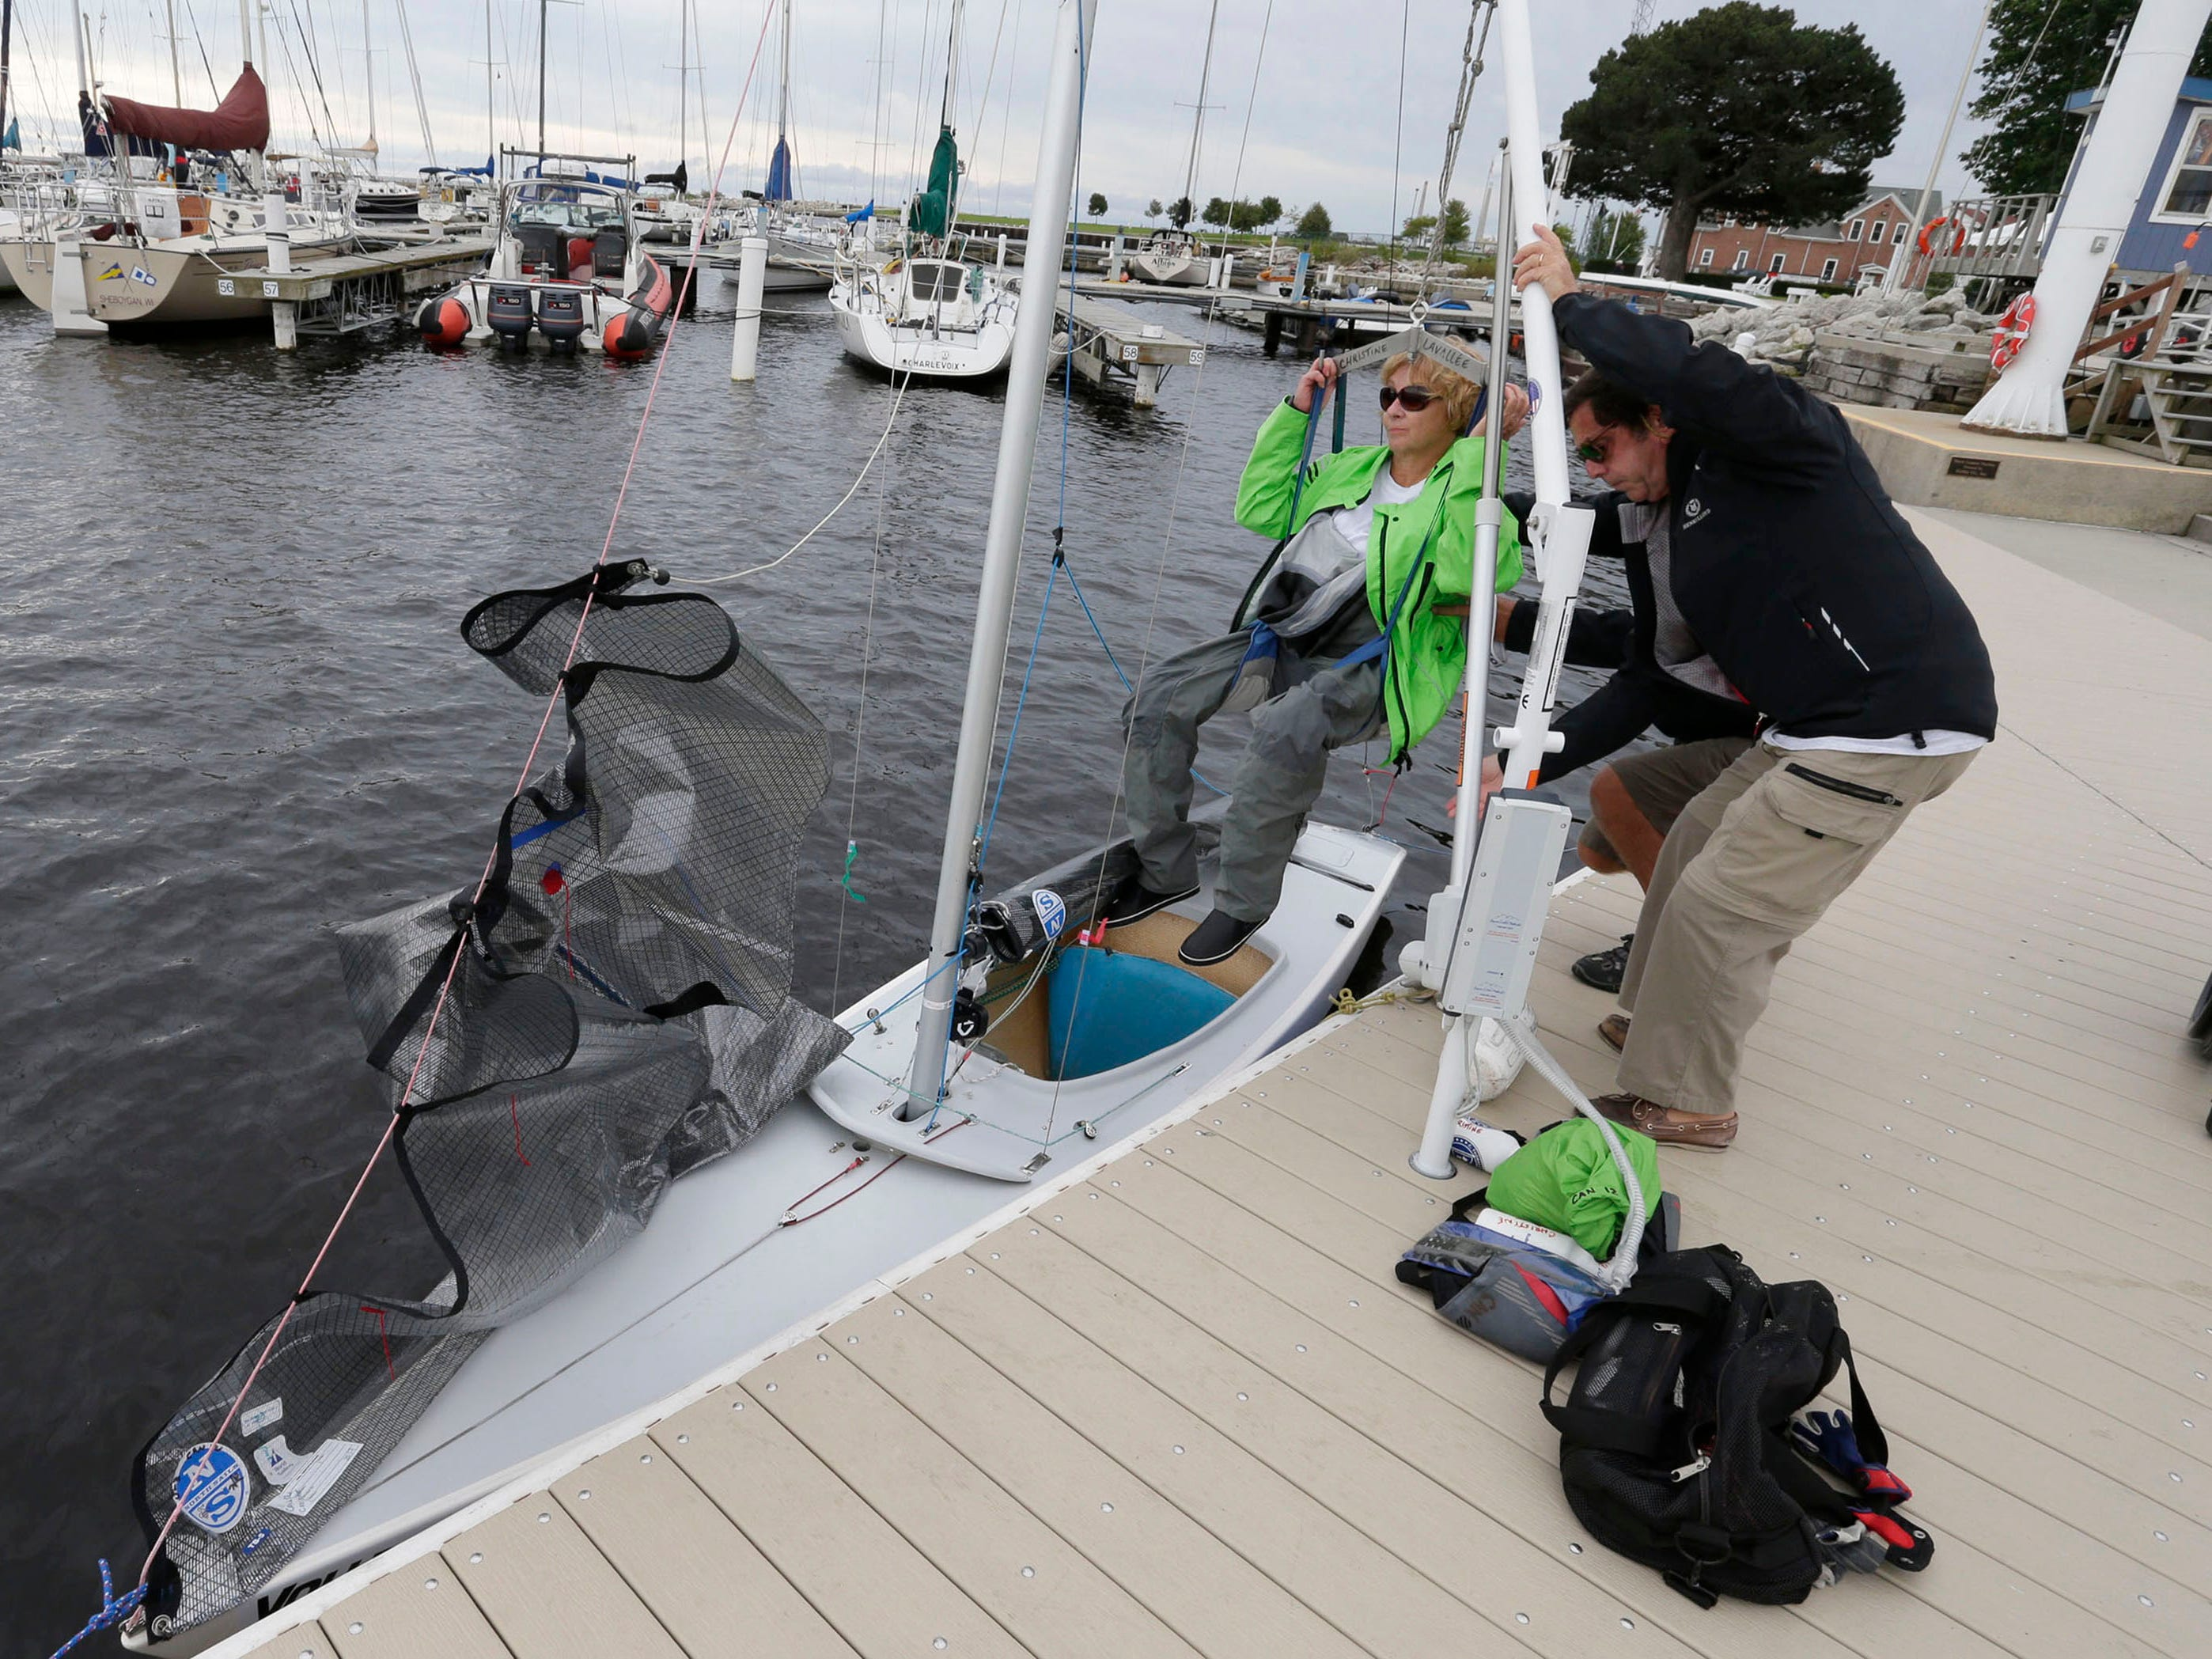 Christine Laballee of Gatineau, Quebec, Canada, is lowered into a sail boat before participating in the Para World Sailing Championships, Tuesday, September 18, 2018, in Sheboygan, Wis.